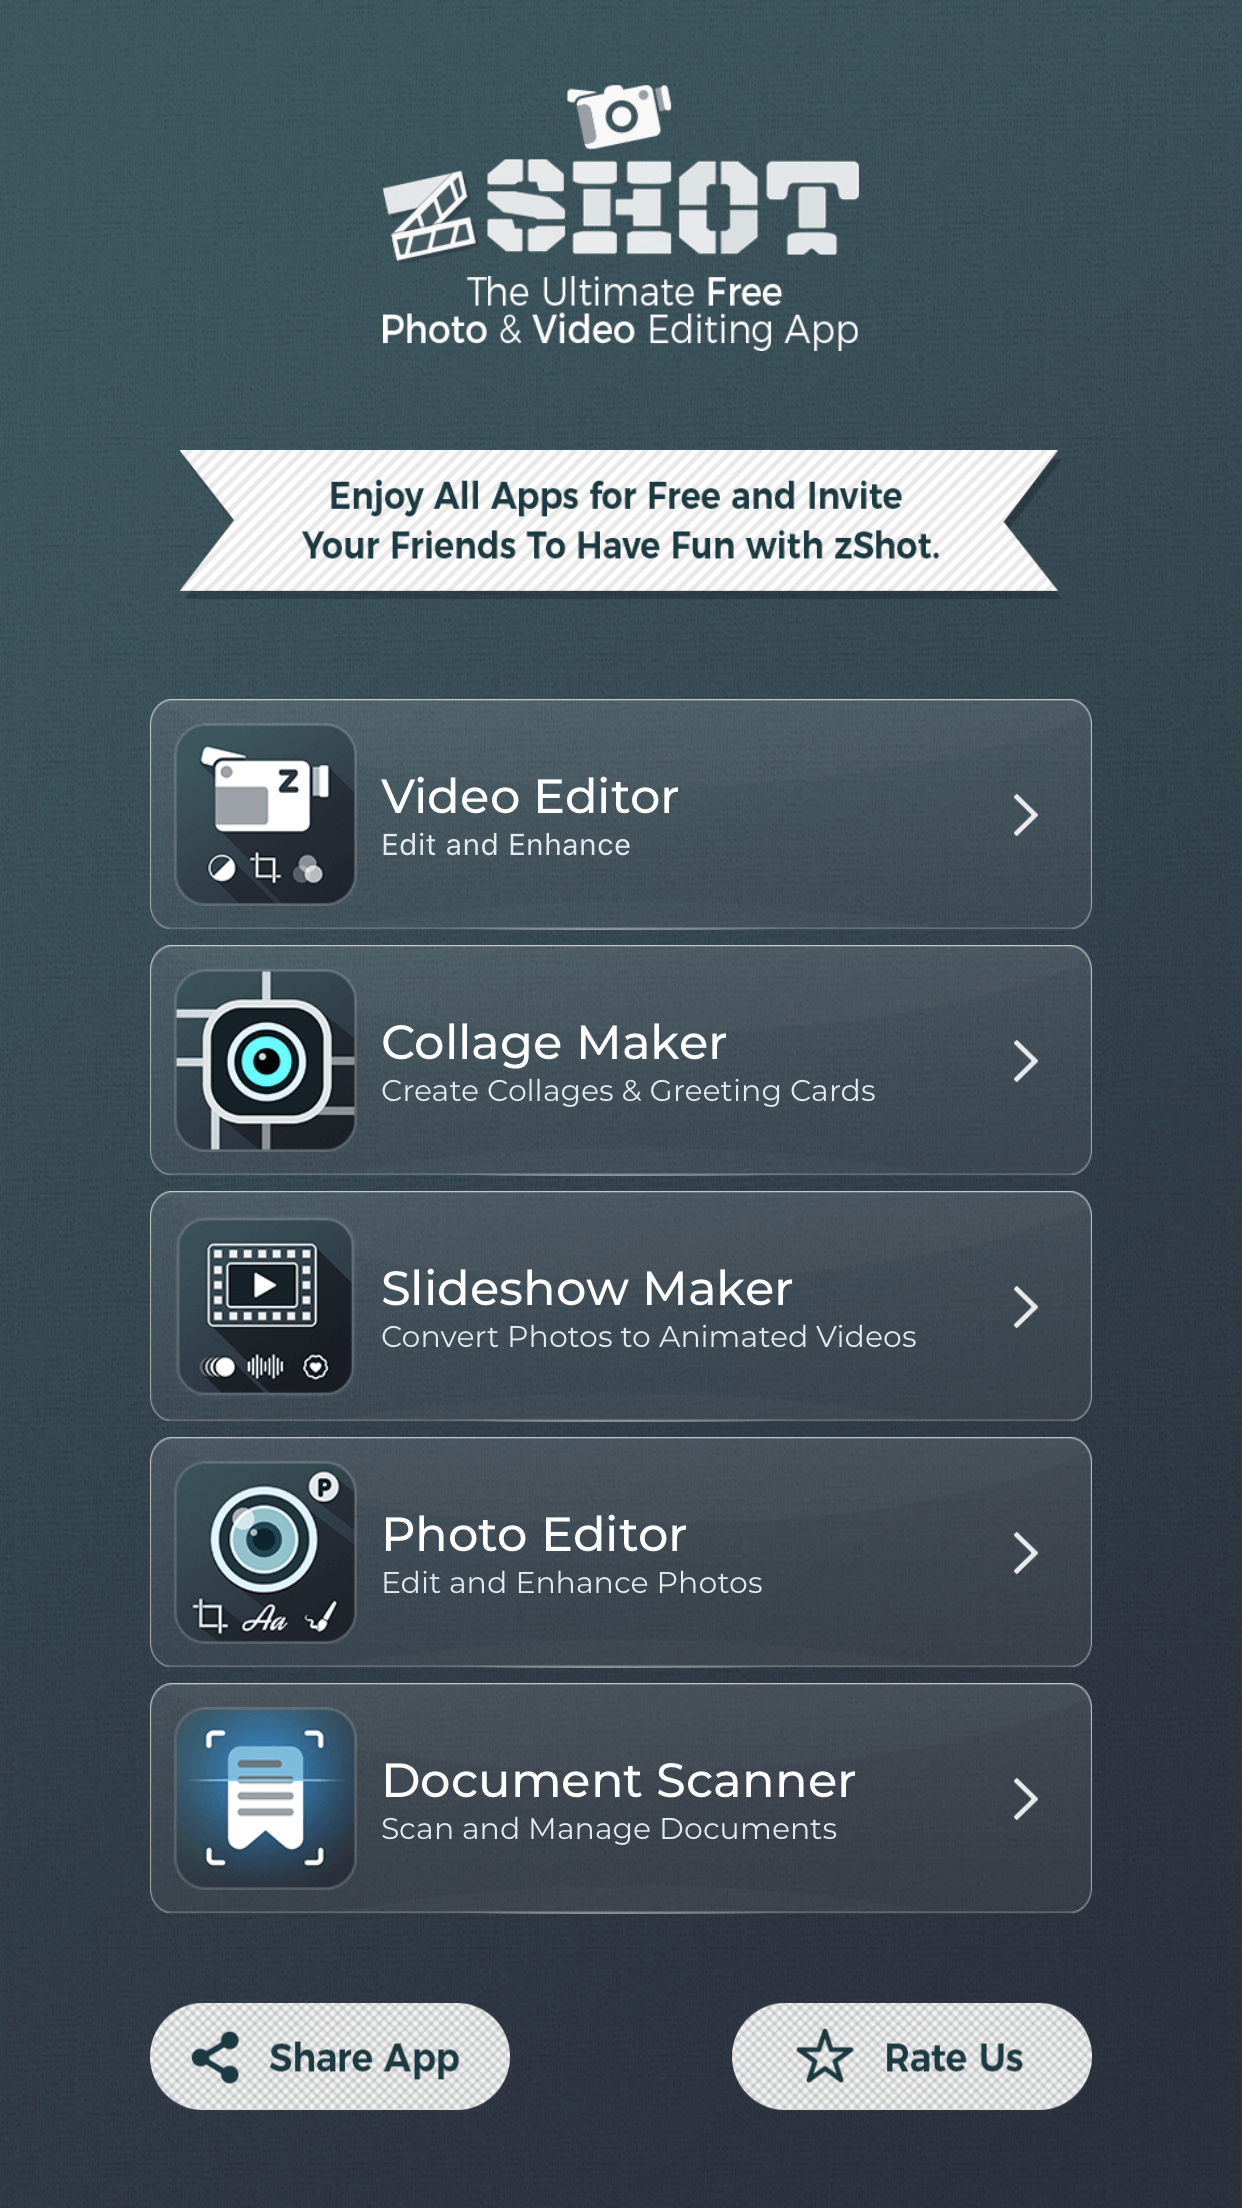 zShot is the ultimate photo and video editing app.